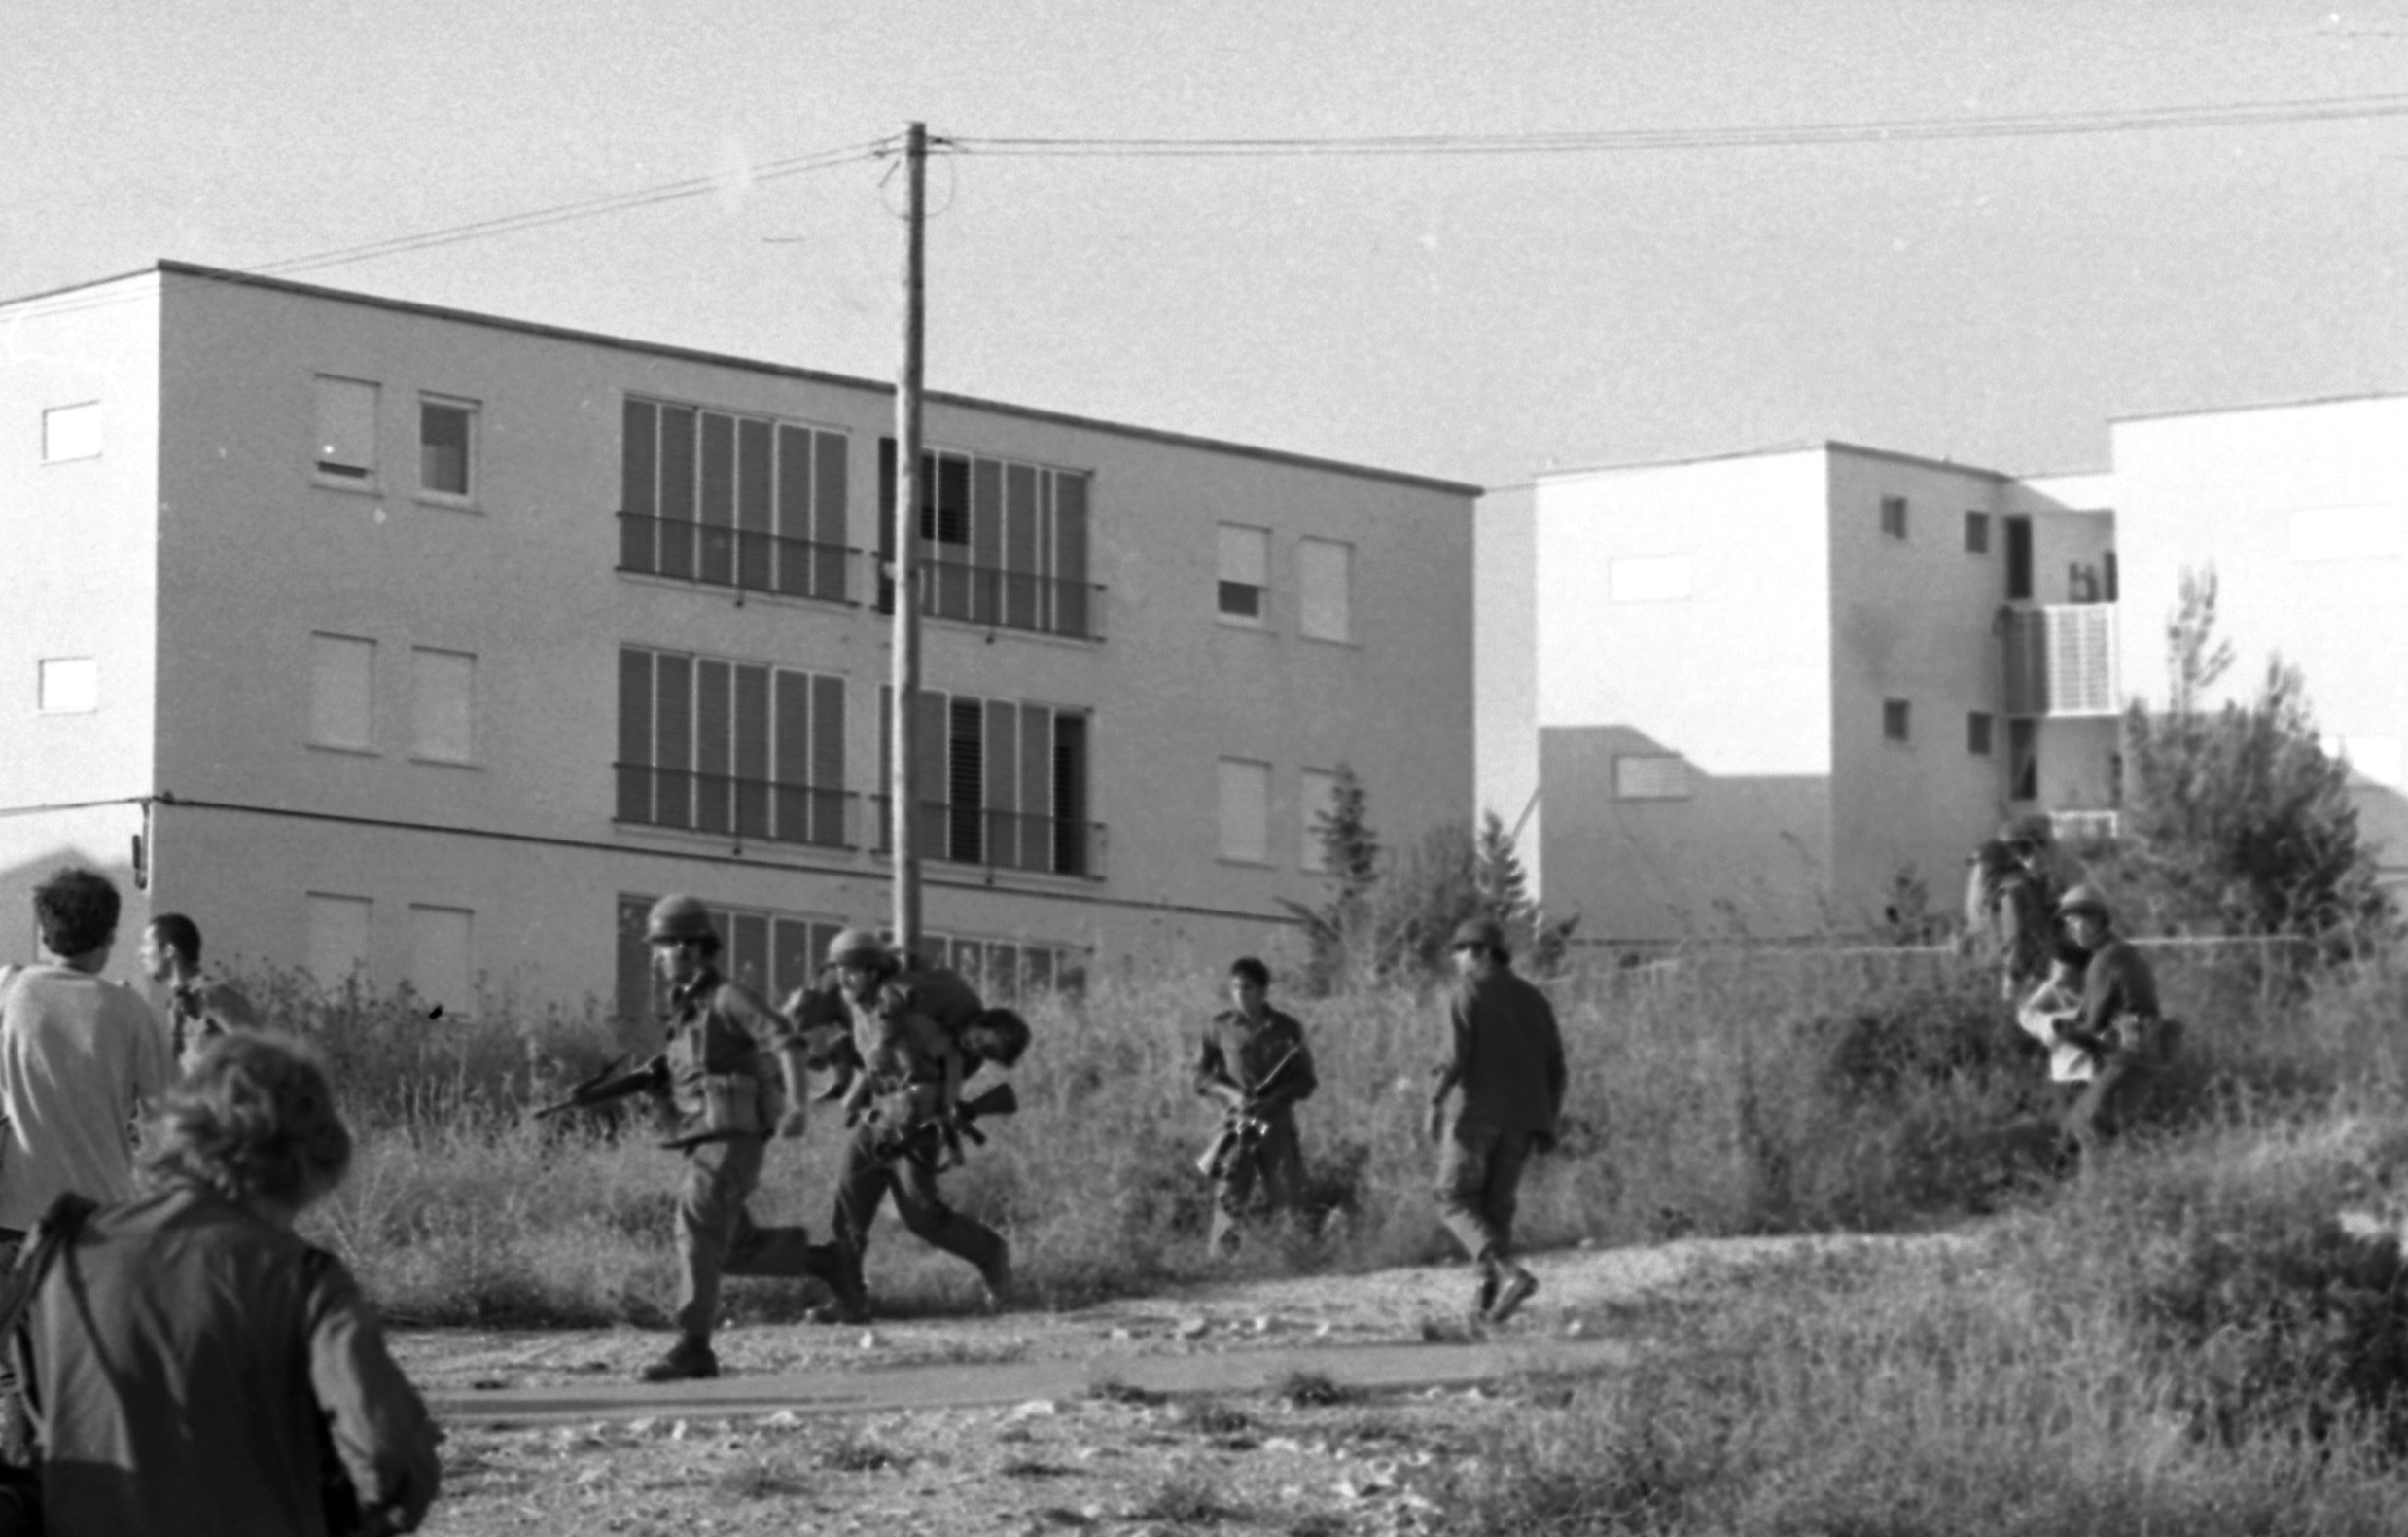 An Arab terrorist group attacked a school at Maalot killing several children and wounded thenth of them. IDF attacked the group killing the terrorists. Photo shows: Soldier rescue wounded children from the school 1974/05/15 Copyright © IPPA 09239-007-41 Photo by IPPA Staff